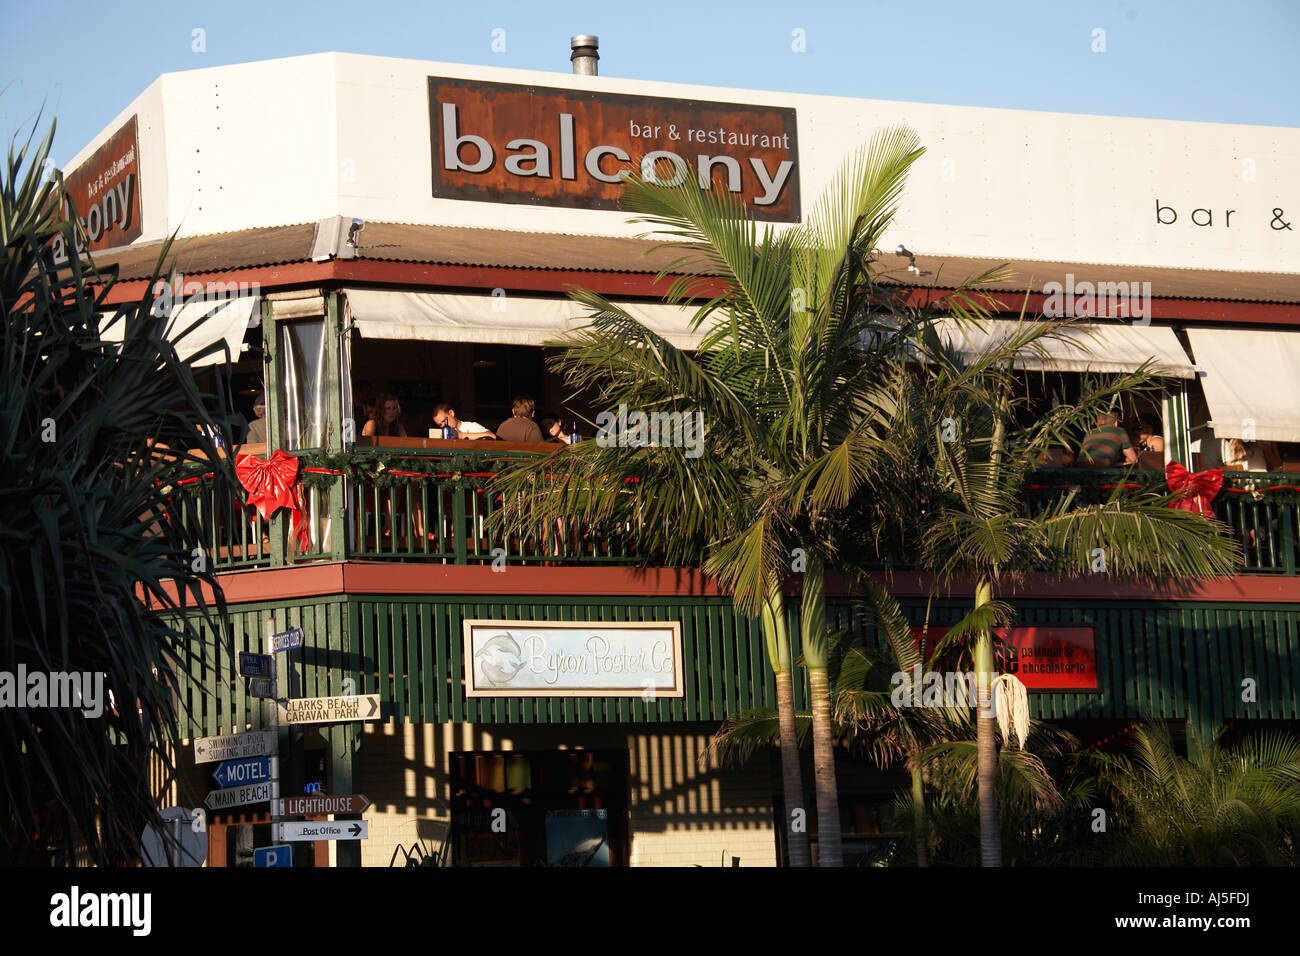 Balcony bar and restuarant in byron bay new south wales for Balcony bar byron